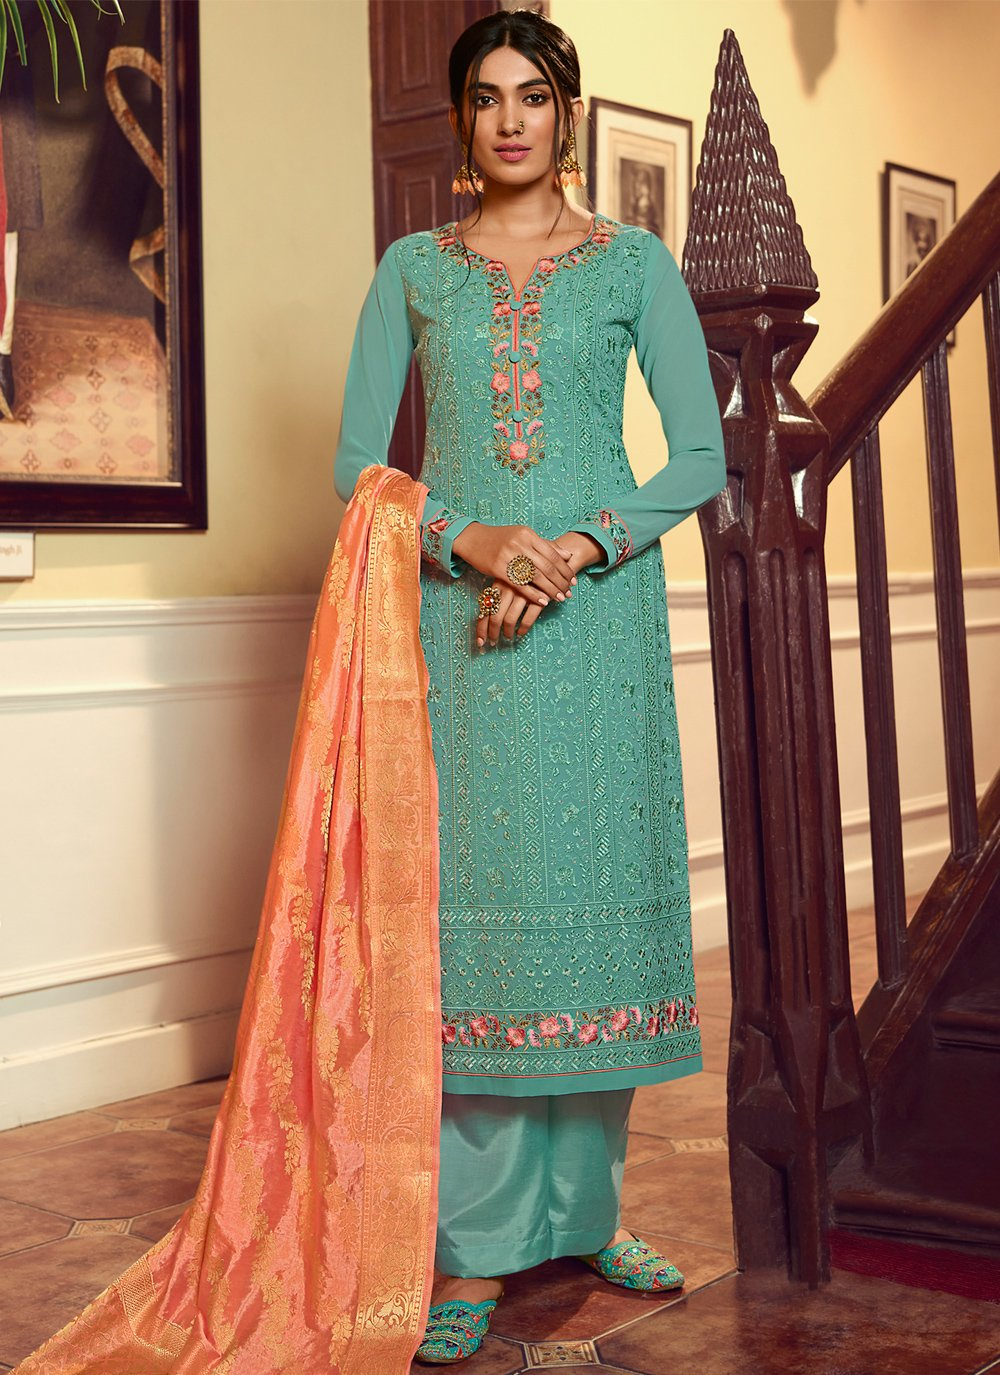 Embroidered Turquoise Faux Georgette Designer Palazzo Salwar Kameez